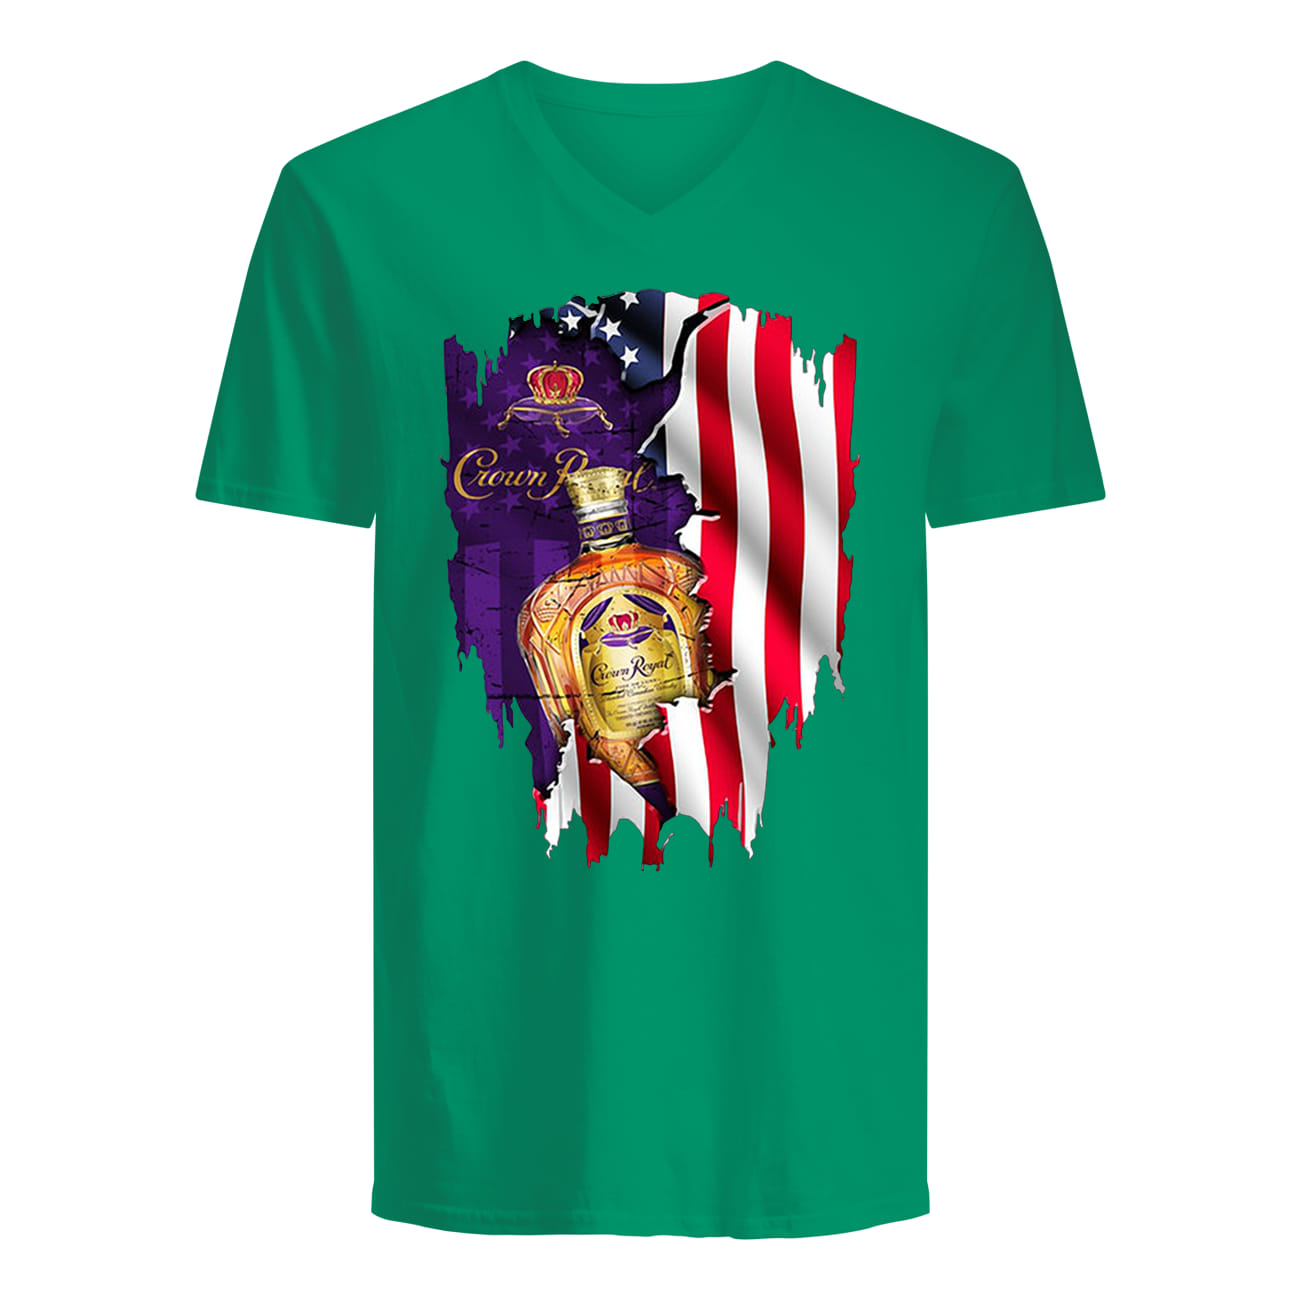 Crown royal inside american flag guy v-neck